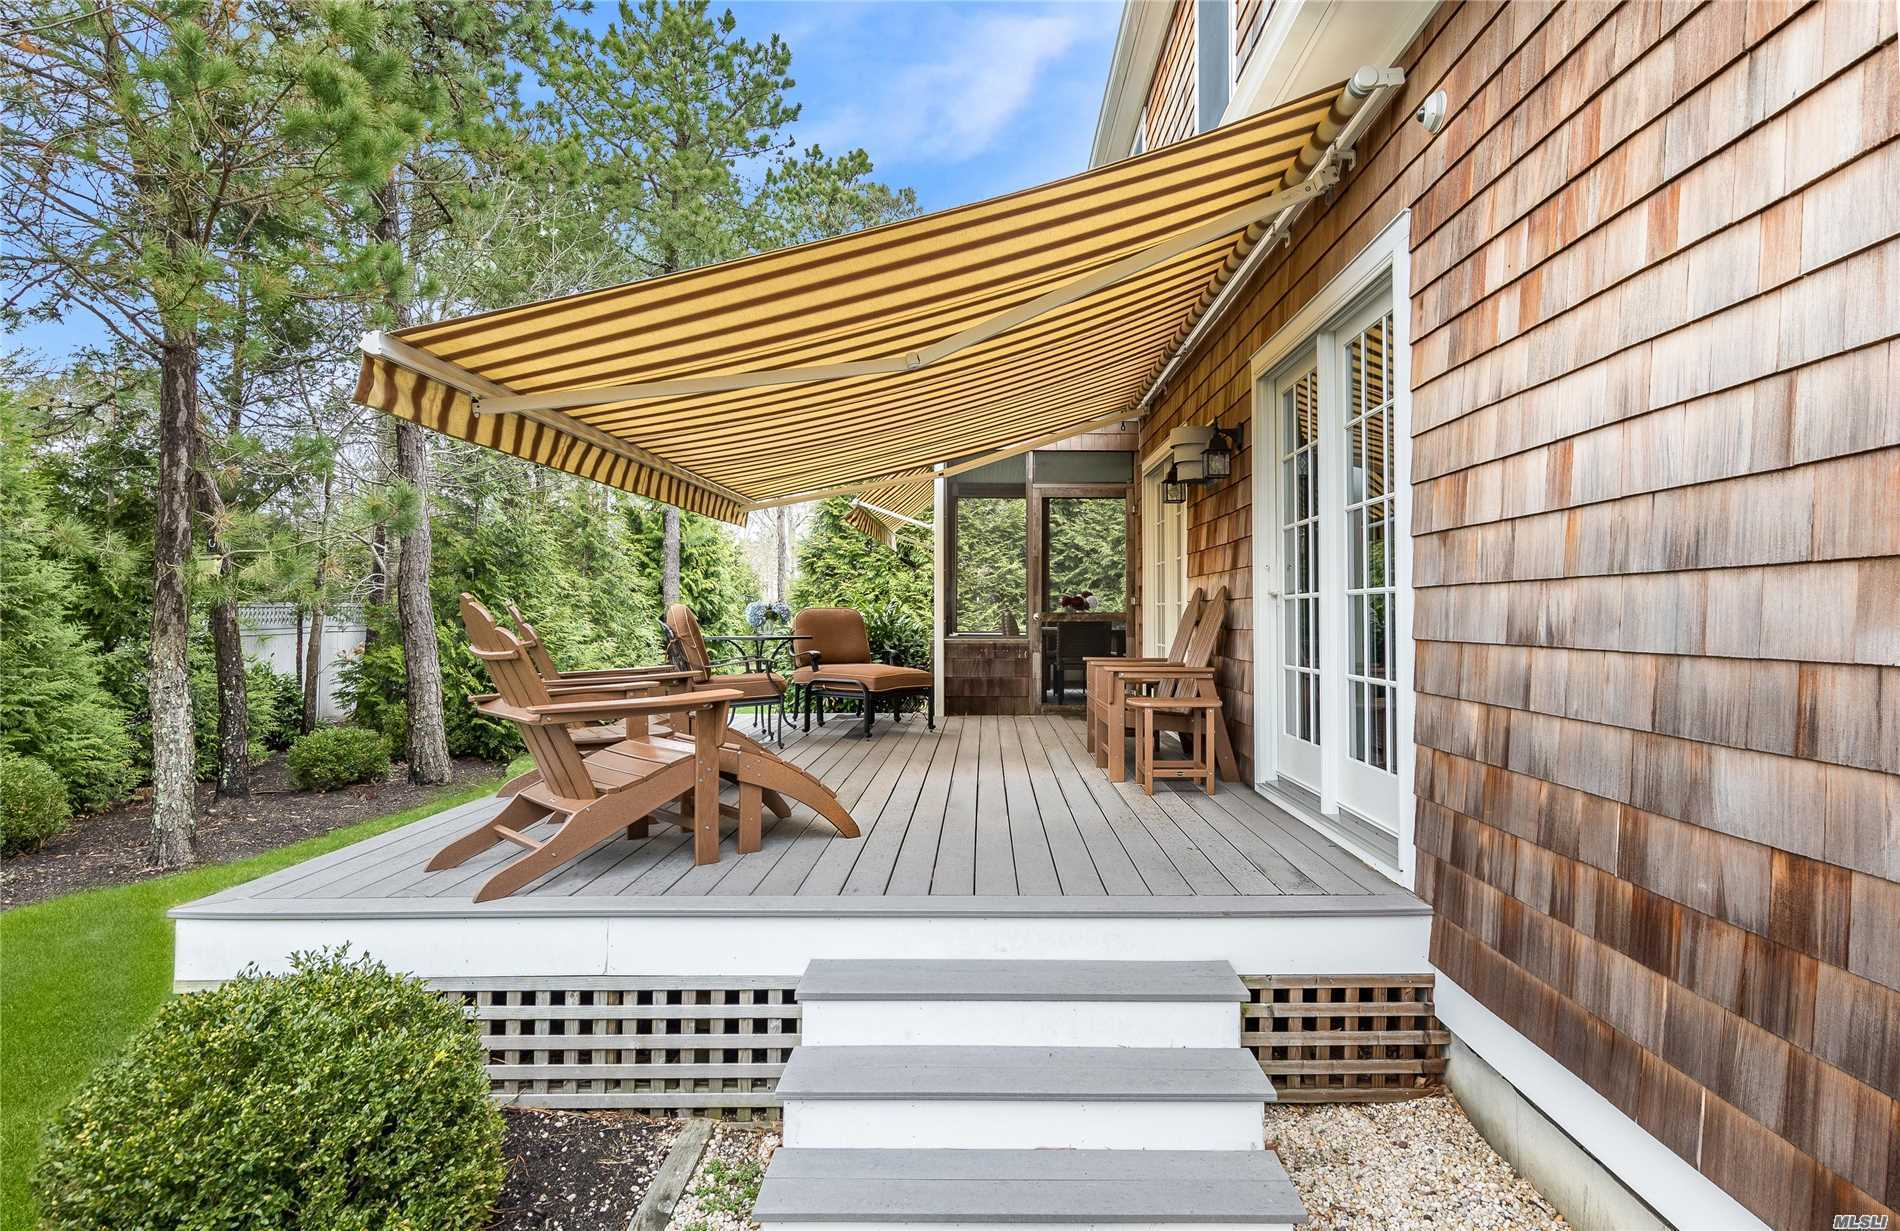 Welcome to Jessup's Landing, a luxurious 55+ older community in Quogue Village. Masterfully crafted, custom detached home presents with noteworthy, tasteful style & flow w/ fine finishings. A sunny foyer welcomes you to a most inviting living room w/ gas fireplace + flows seamlessly to West facing outdoor, rear deck+ cozy screened porch. Handsome kitchen joins the formal dining area for festive gatherings. Main floor master en suite + 3 guest BR's on 2nd level. Village of Quogue easy living!